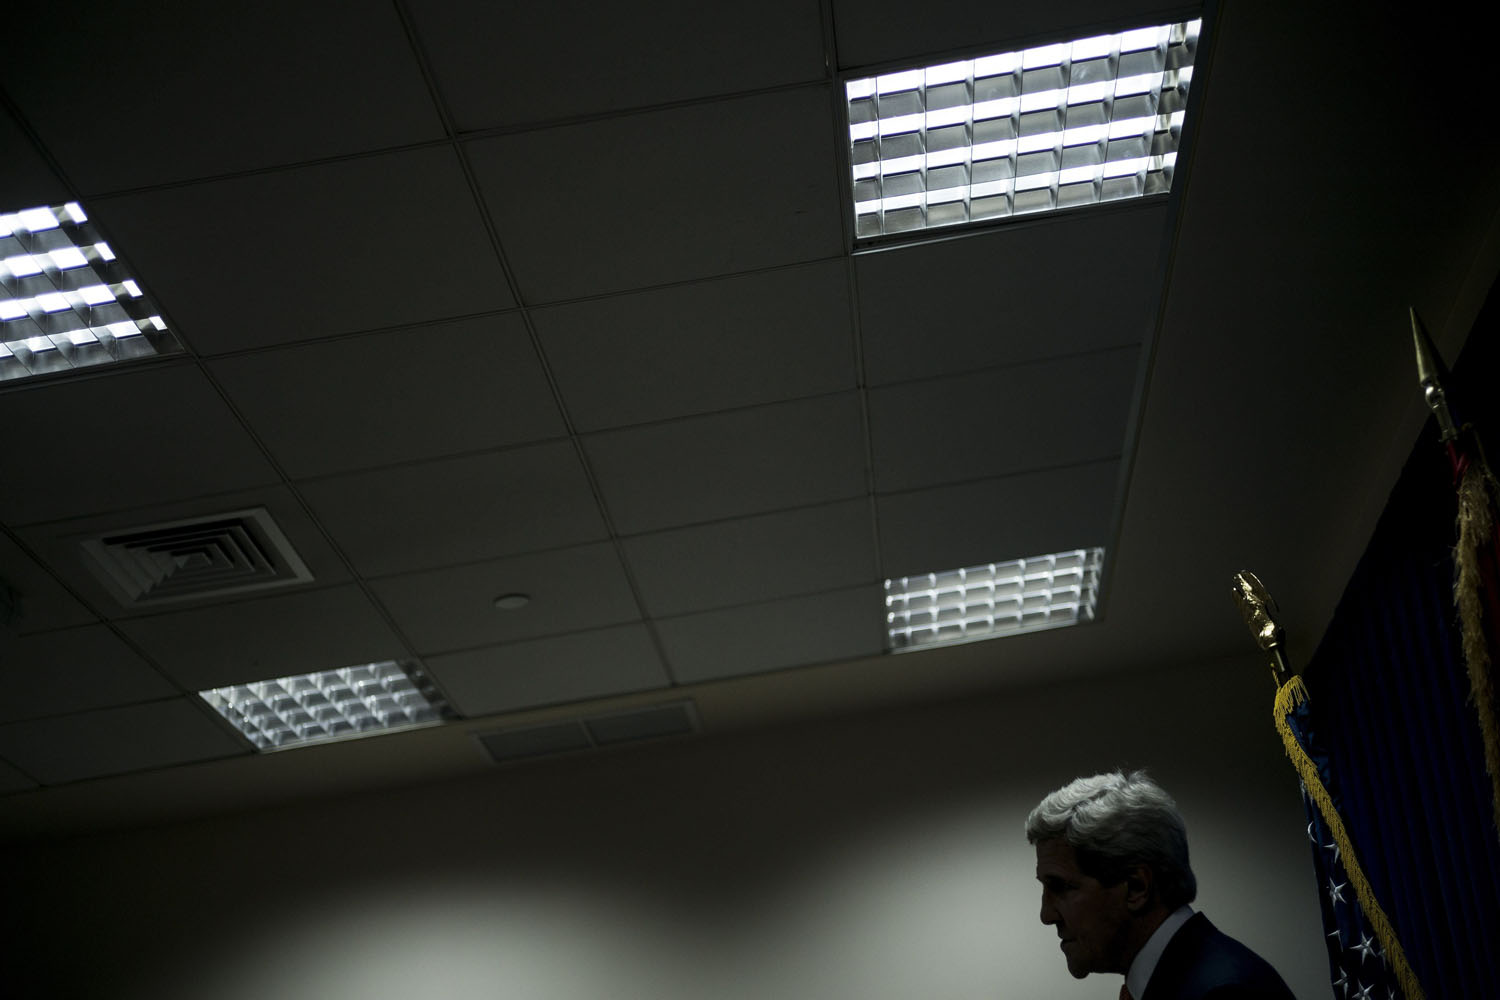 Jun. 23, 2014. US Secretary of State John Kerry pauses while speaking during a press conference at the US embassy in the International Zone in the Iraqi capital Baghdad.